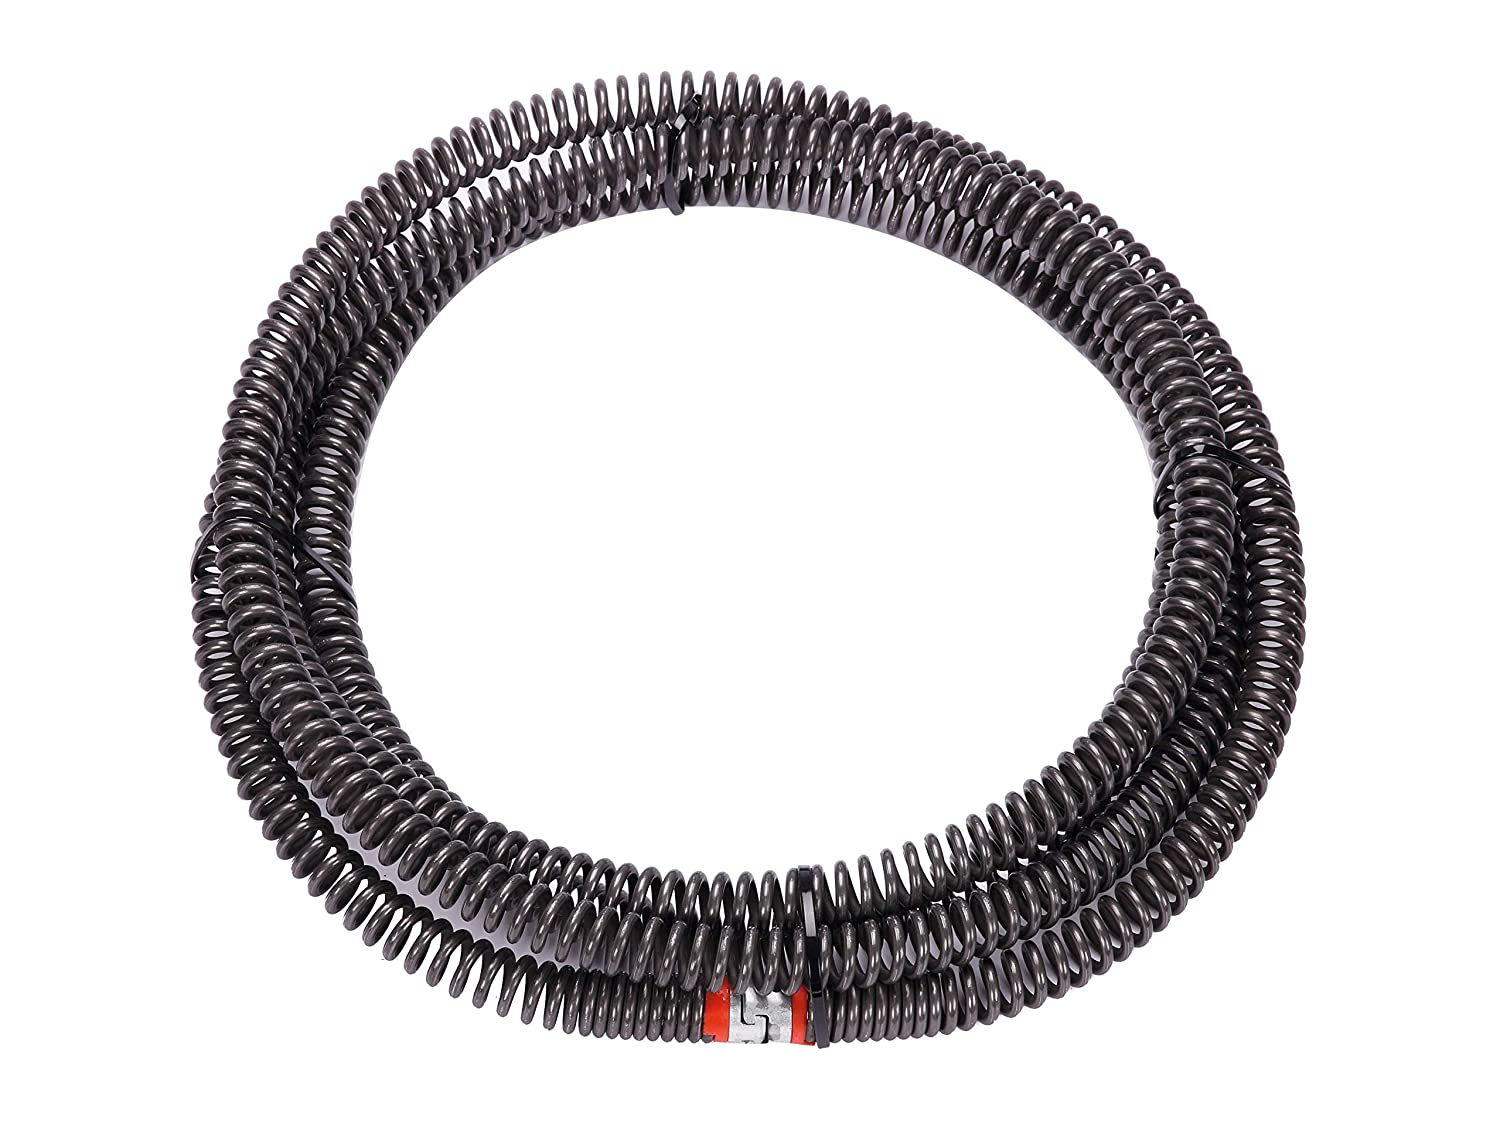 Drain Cleaning Cable 1.1/4